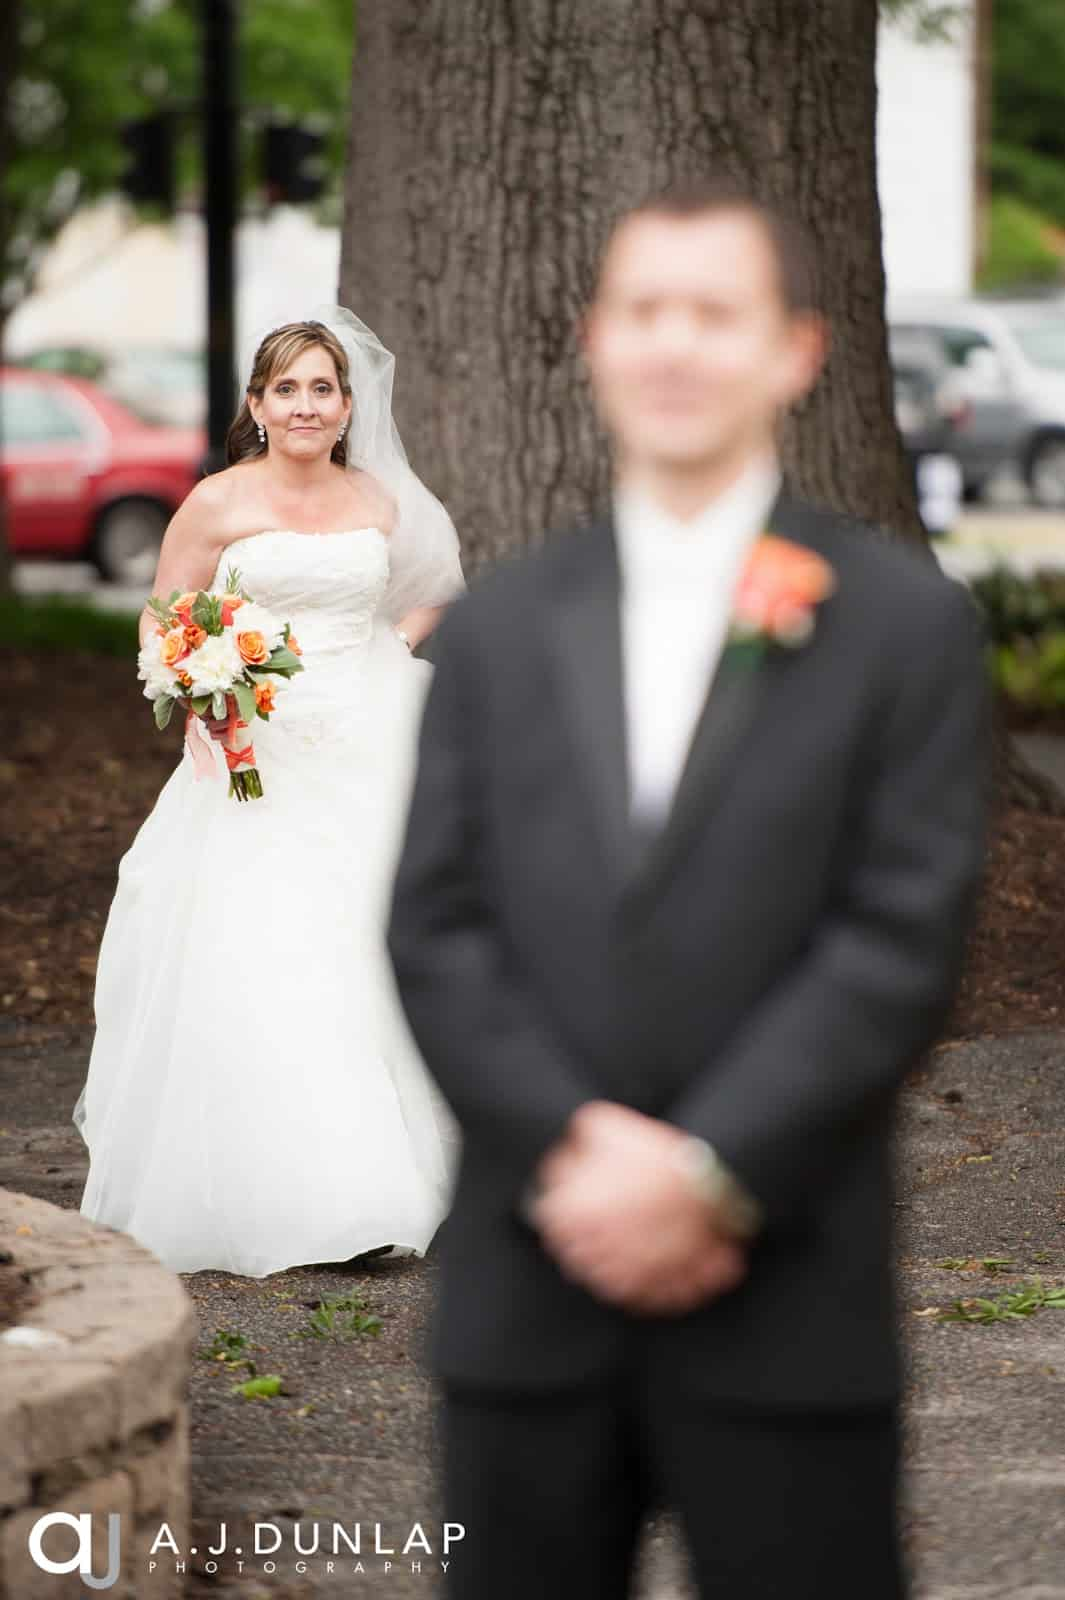 4.22 Wedding Photos from A.J. Dunlap Photography-4